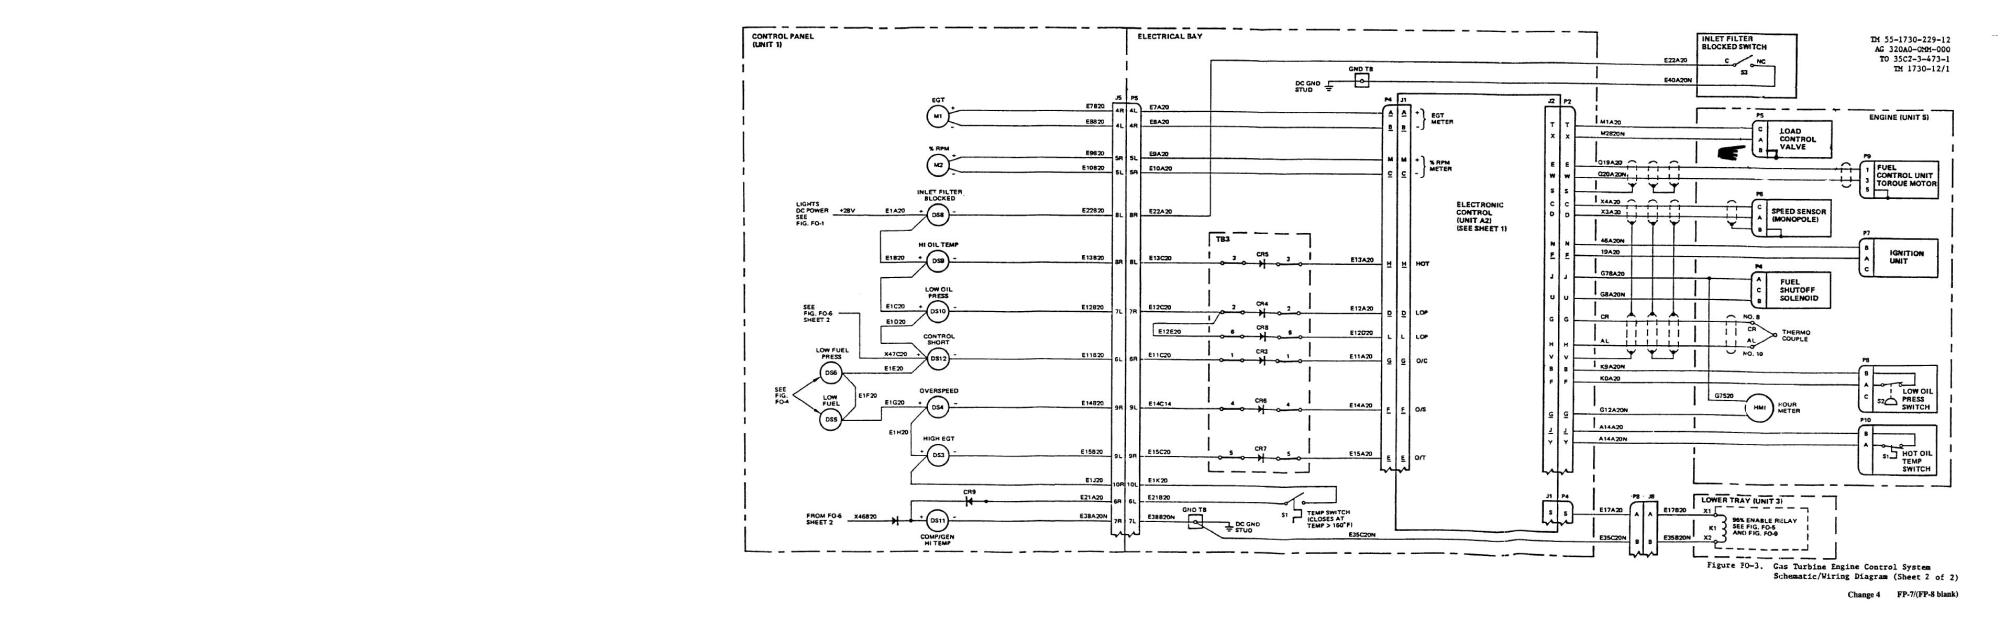 hight resolution of gas turbine engine control system schematic wiring diagram sheet 2 of 2